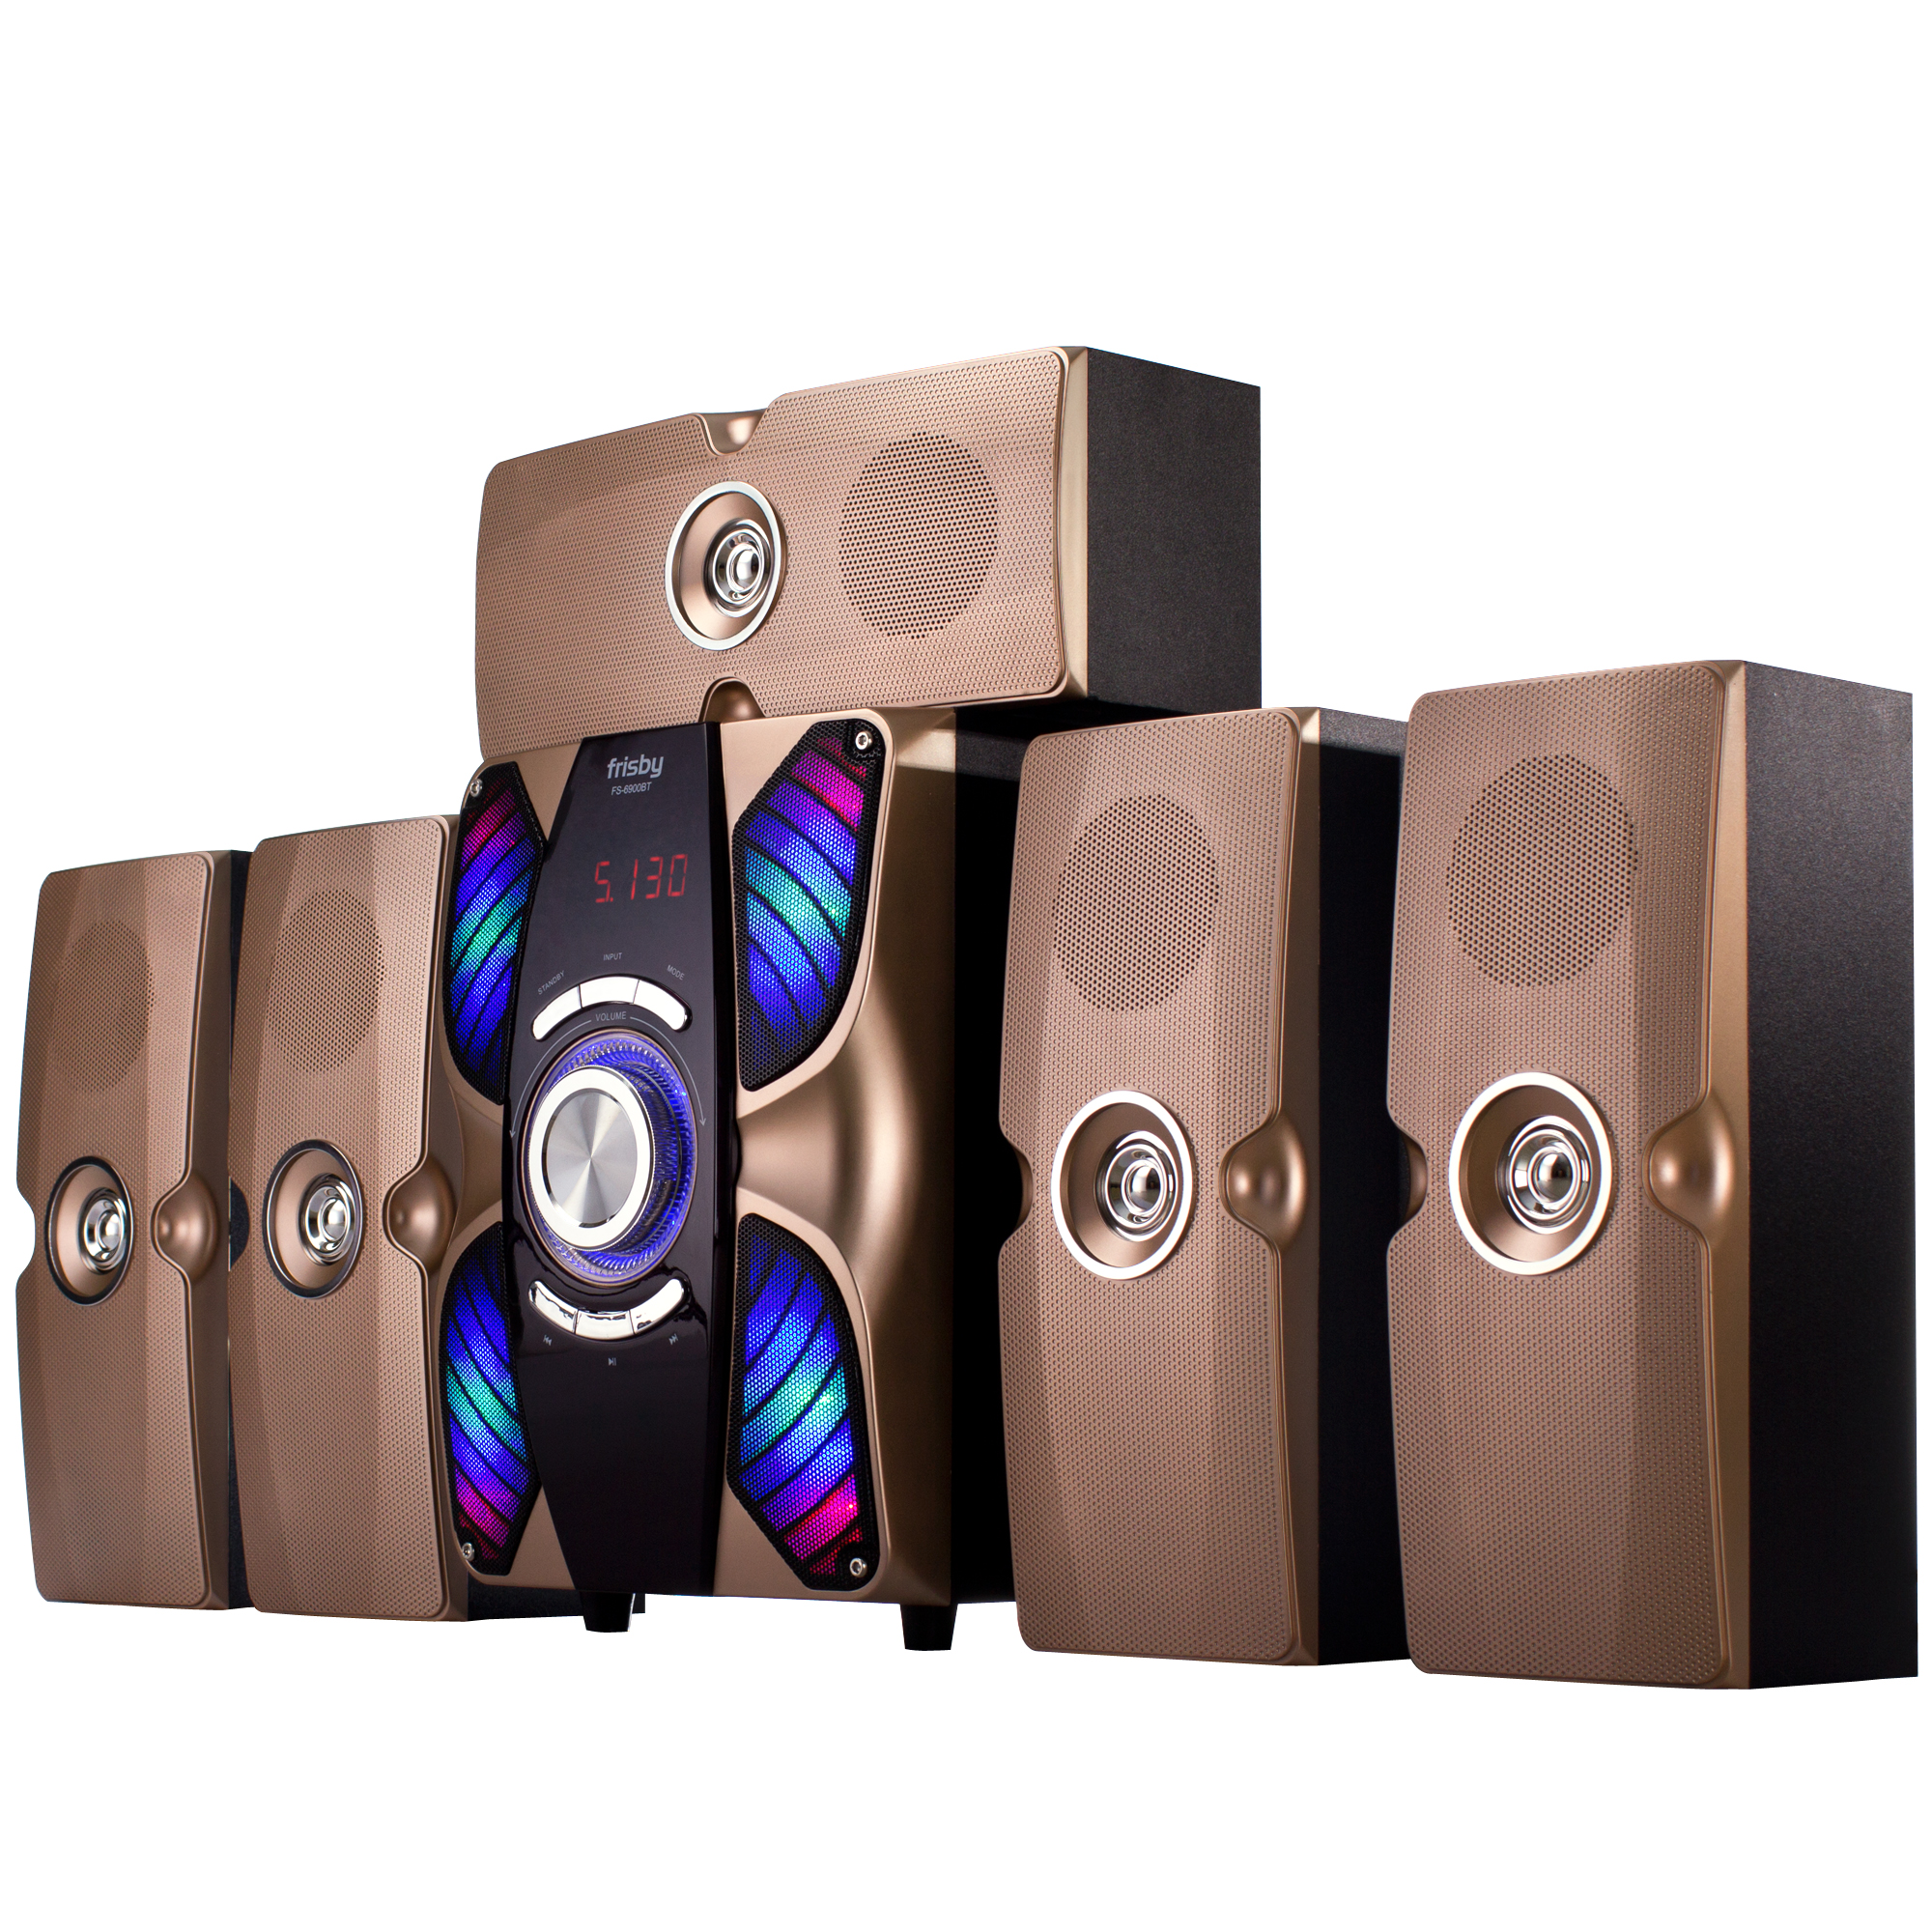 Frisby FS-6900BT 5.1 Surround Sound Multimedia Home Theater Speaker System with Flashing LED Lights Bluetooth USB/SD Slots & Remote Control